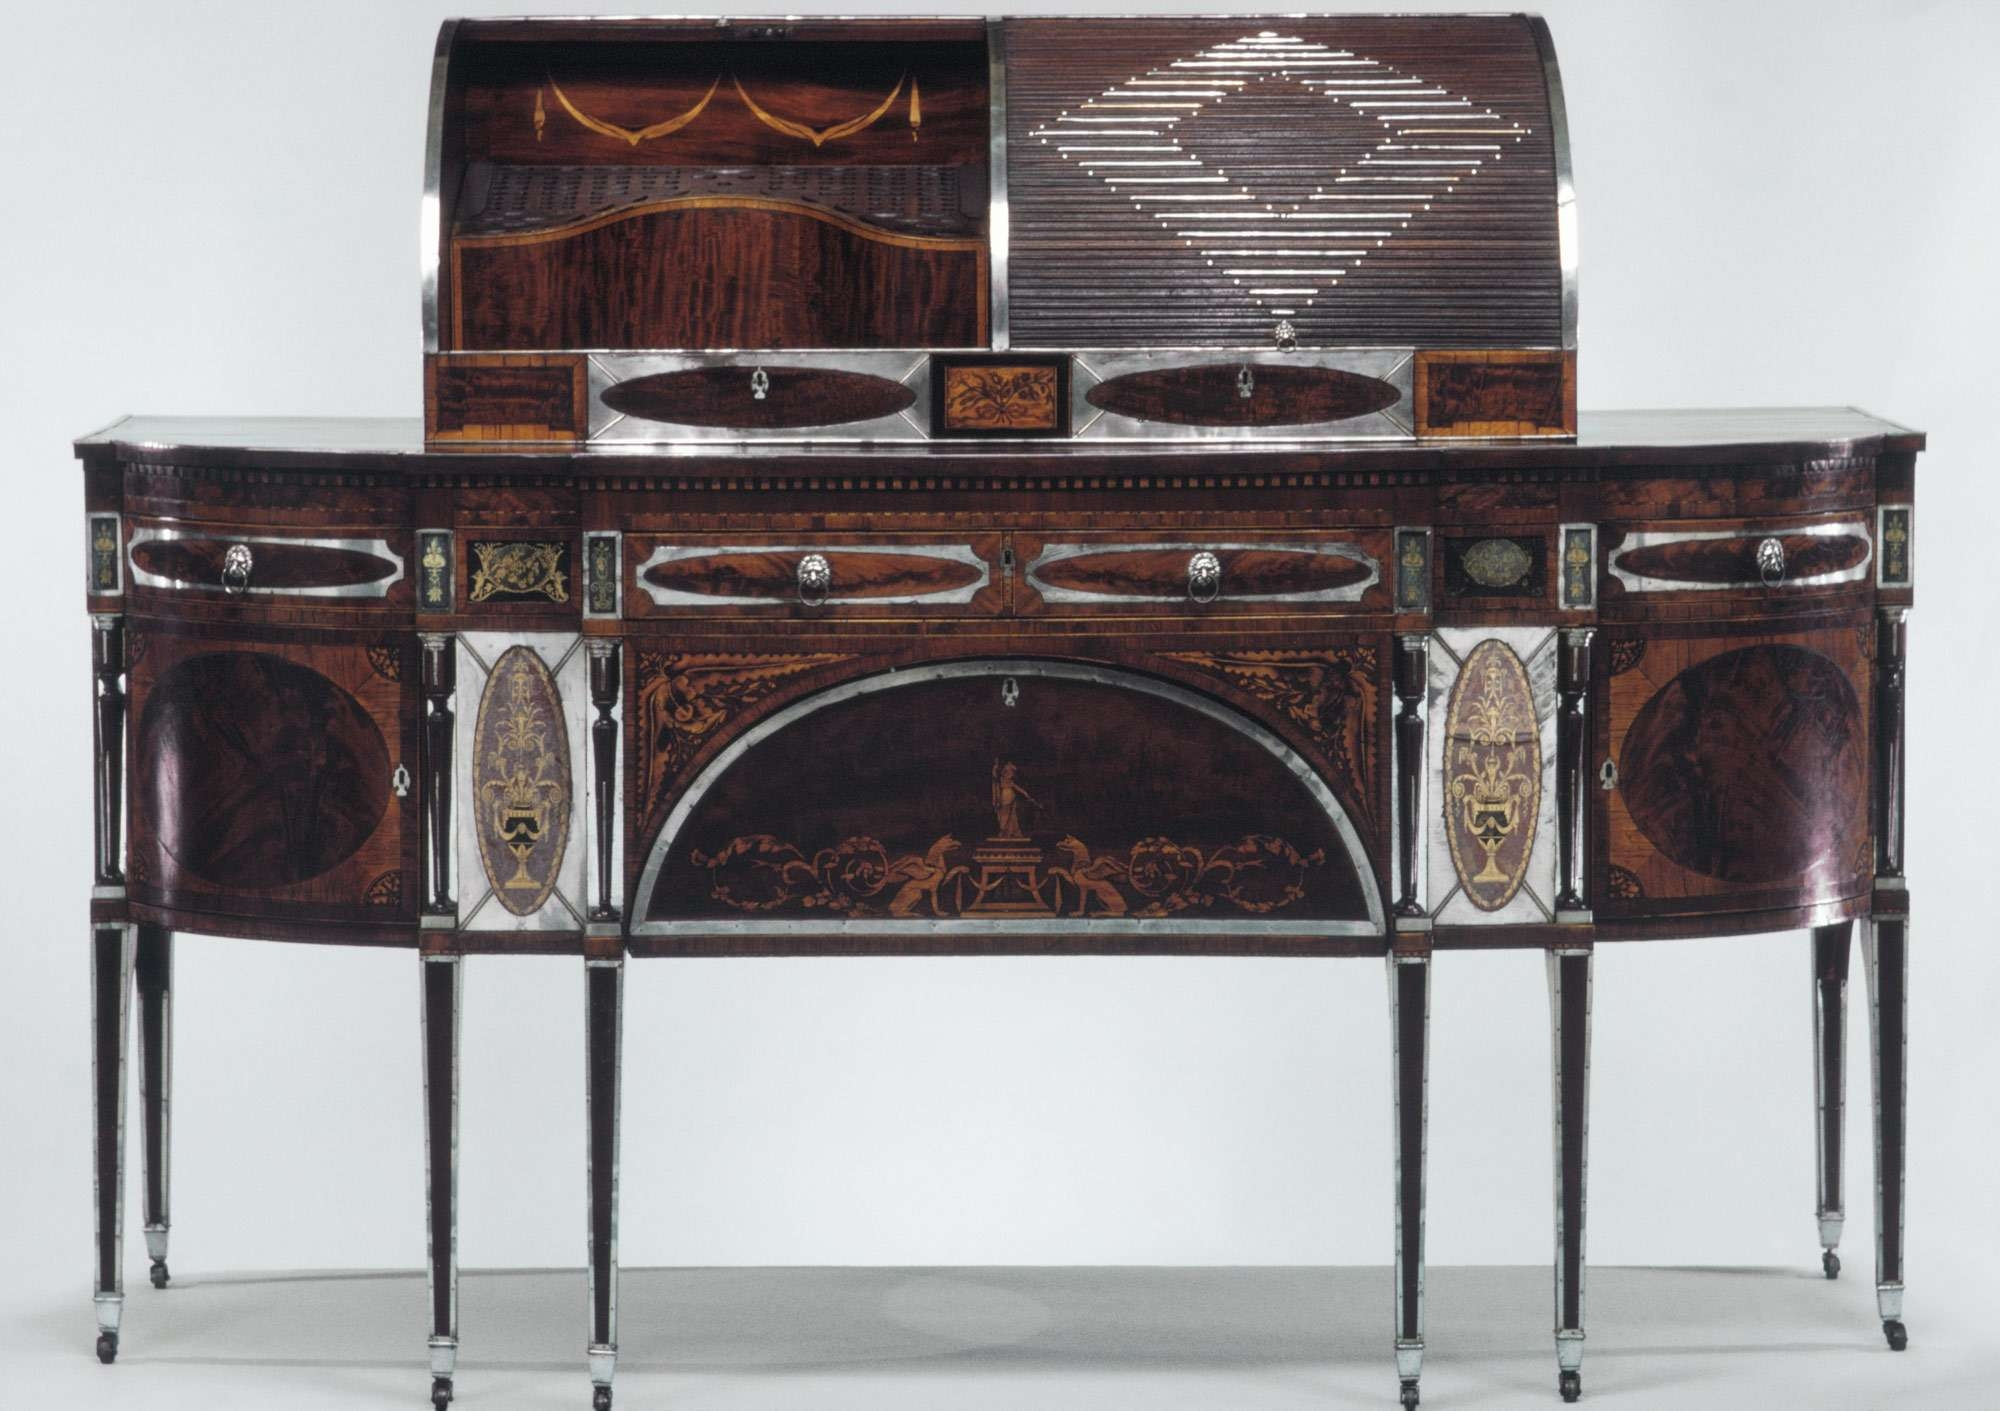 Sideboard | Work Of Art | Heilbrunn Timeline Of Art History | The Intended For White Pine Sideboards (View 18 of 20)